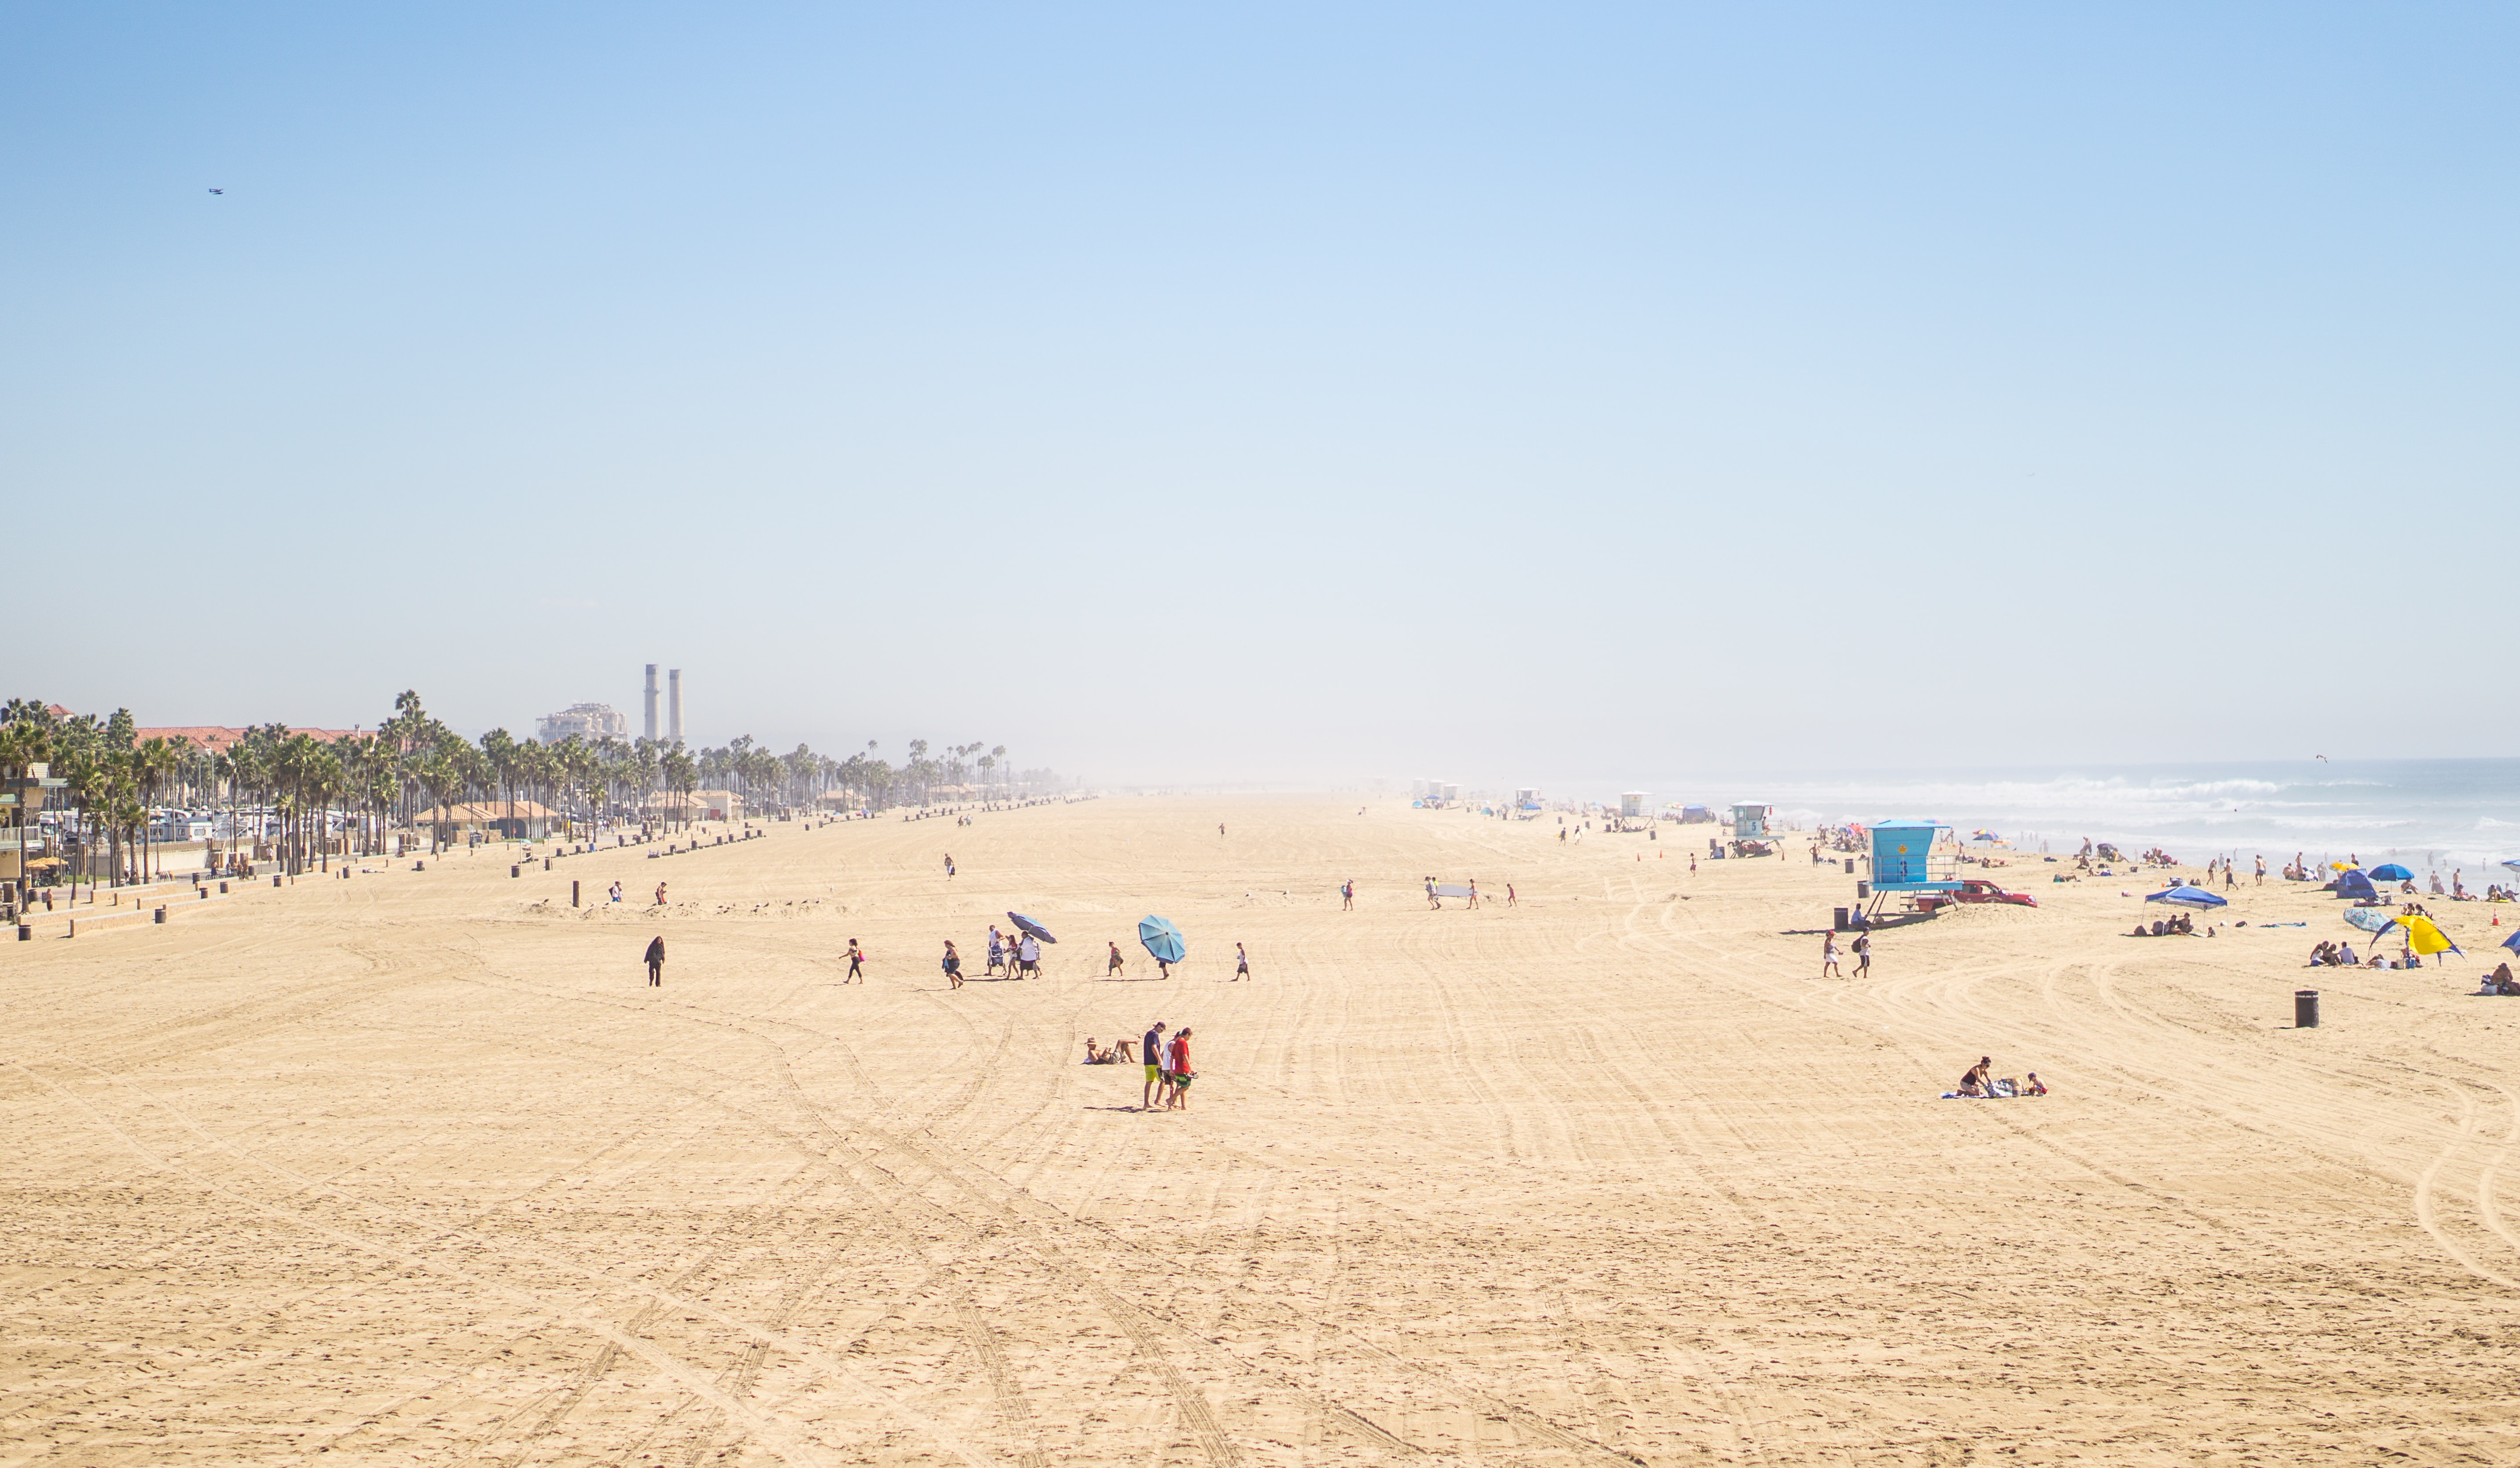 Large sea shore proves to be huge tourist attraction at the beach during summer